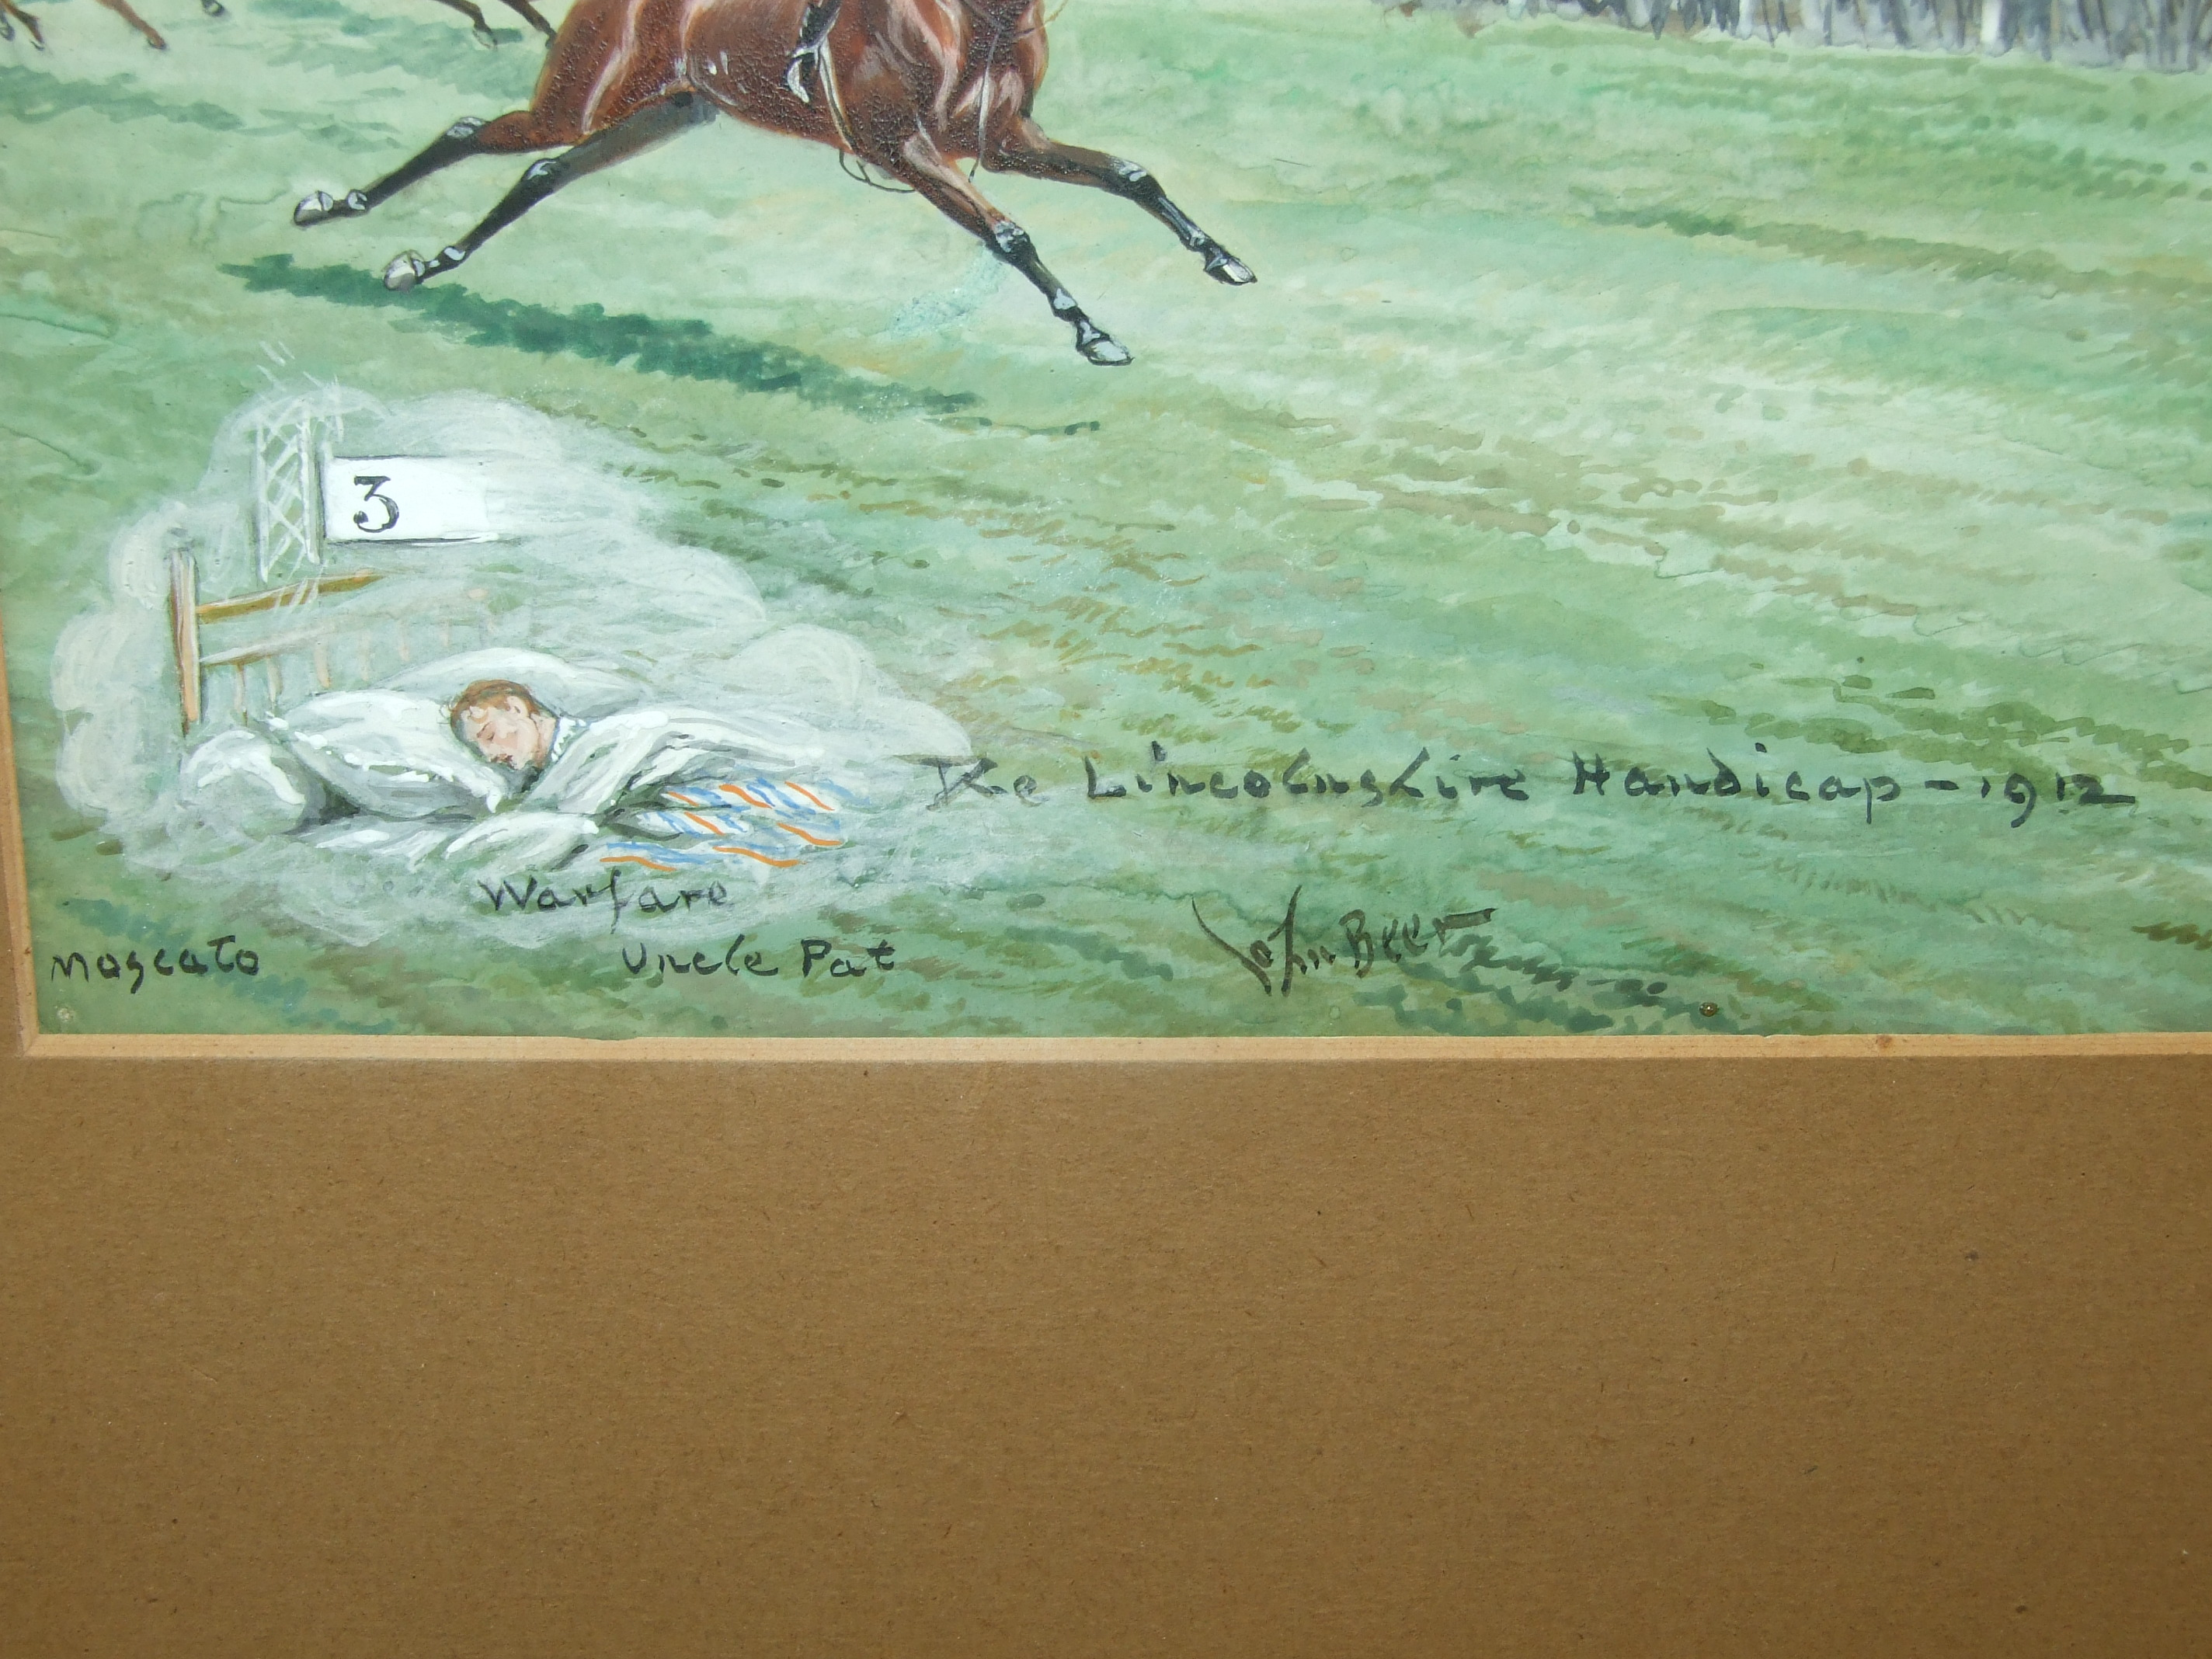 John Beer (1883-1915), 'The Lincolnshire Handicap 1912', signed watercolour, inscribed with - Image 2 of 2